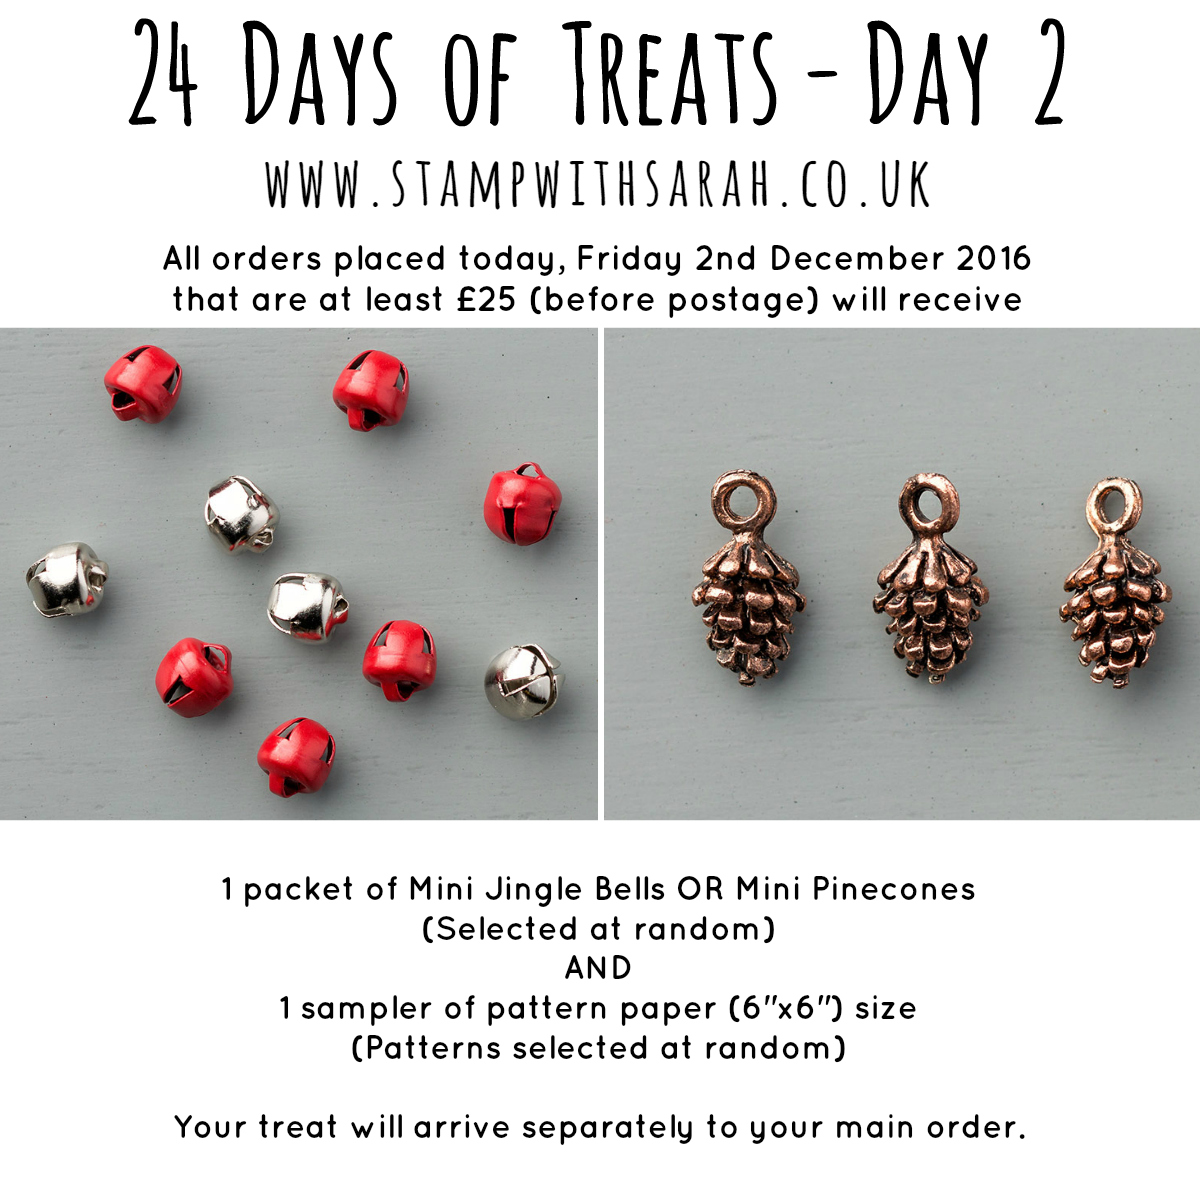 24-days-of-treats-day-2